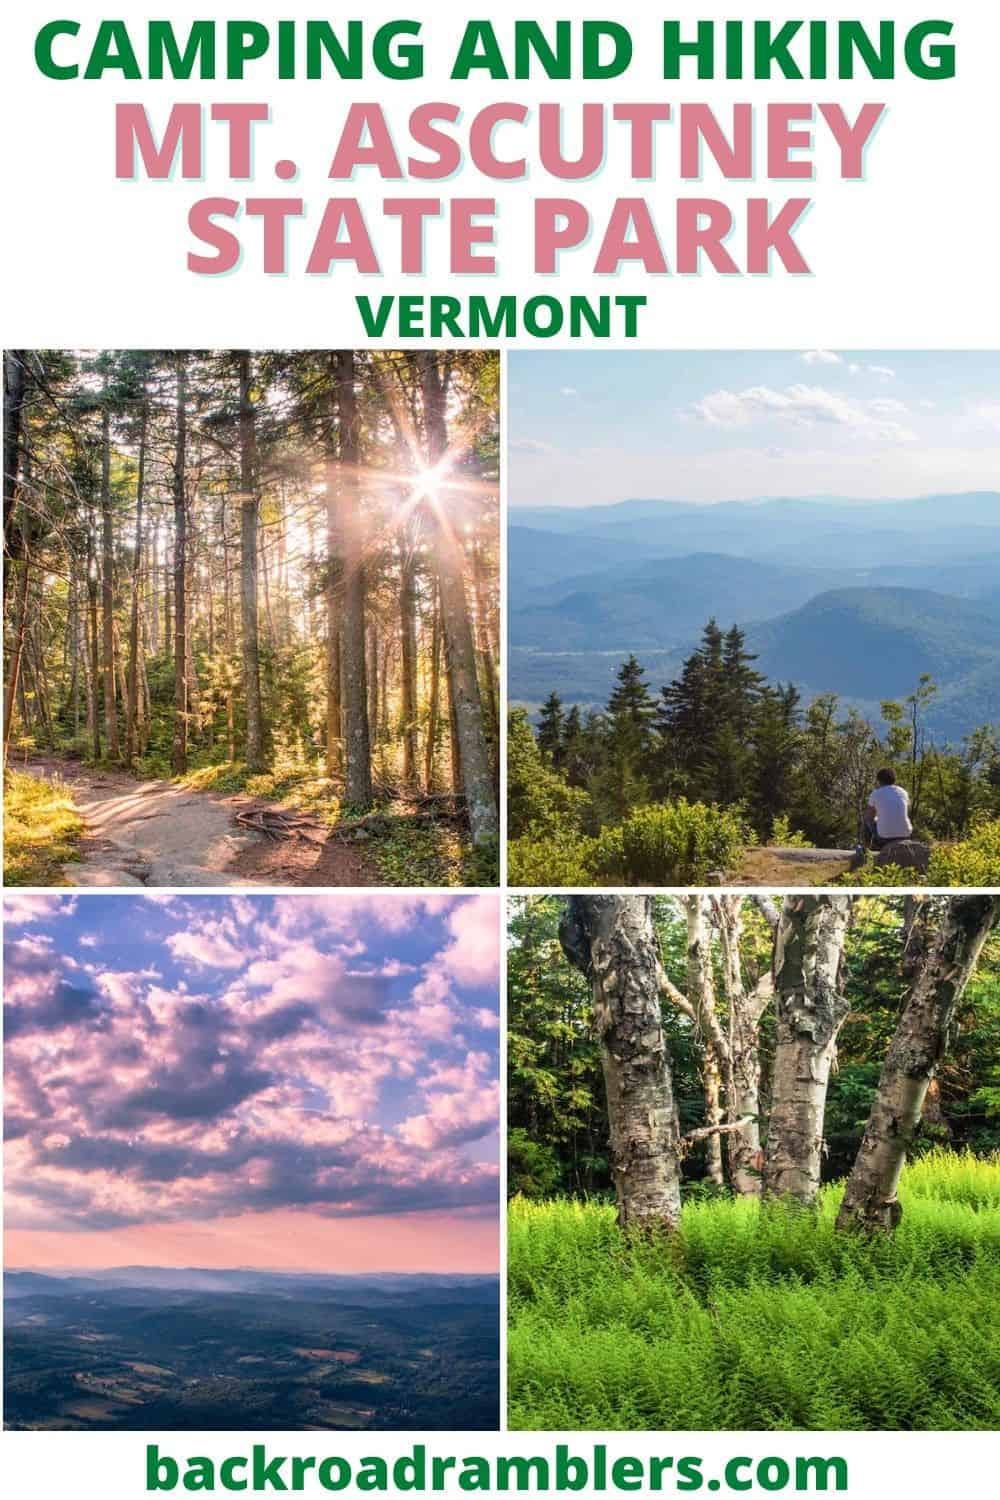 A collage of photos featuring Mt. Ascutney in Vermont. Text overlay: Camping and Hiking on Mt. Ascutney in Vermont.